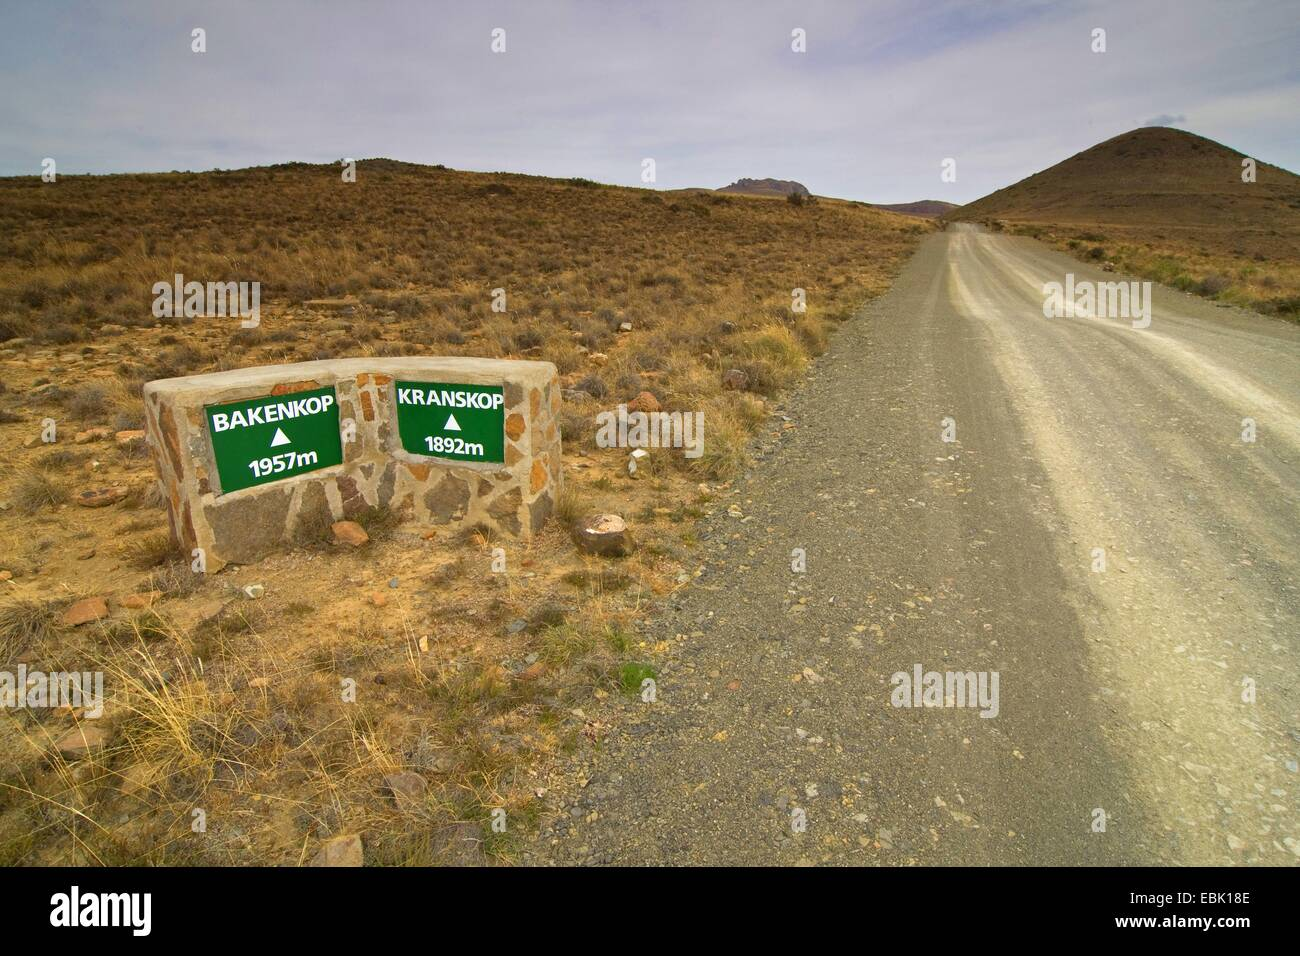 sign, height indications of surrounding mountains, South Africa, Eastern Cape, Mountain Zebra National Park - Stock Image